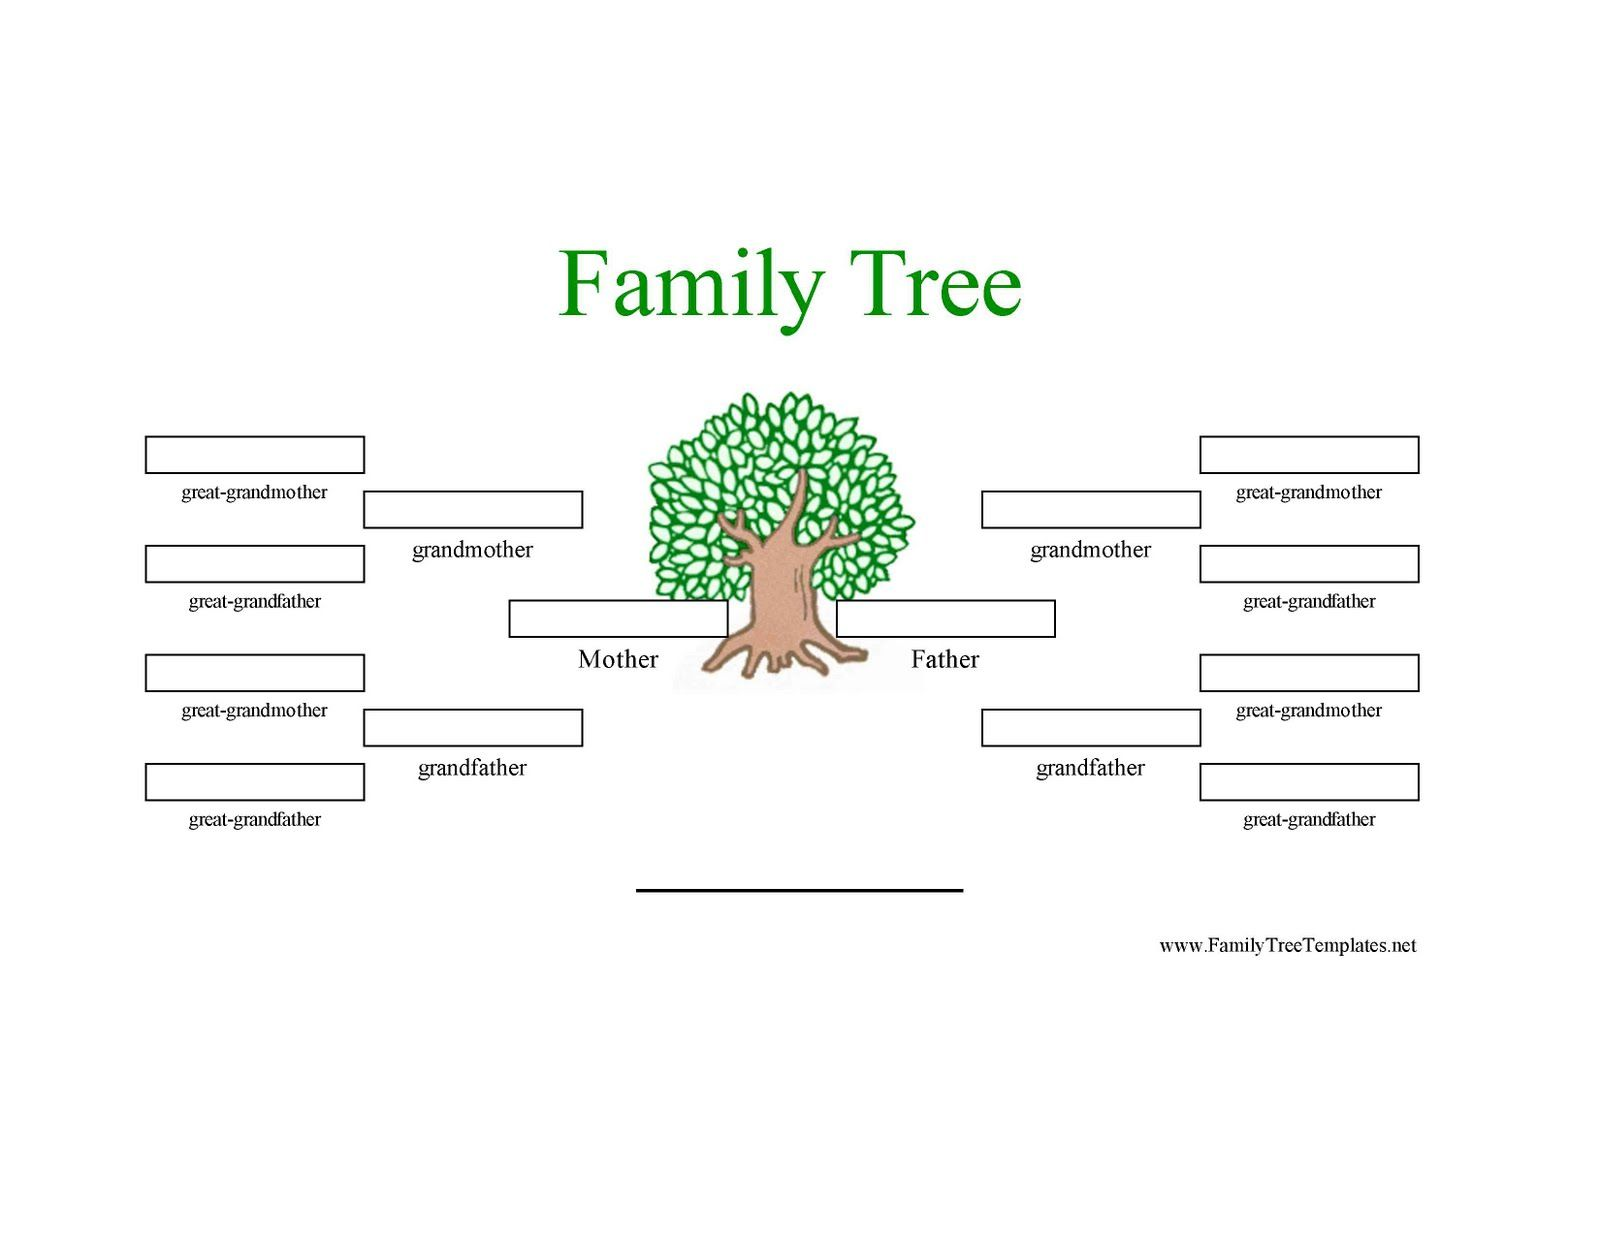 12 Generation Family Tree Sample | generations family tree ...